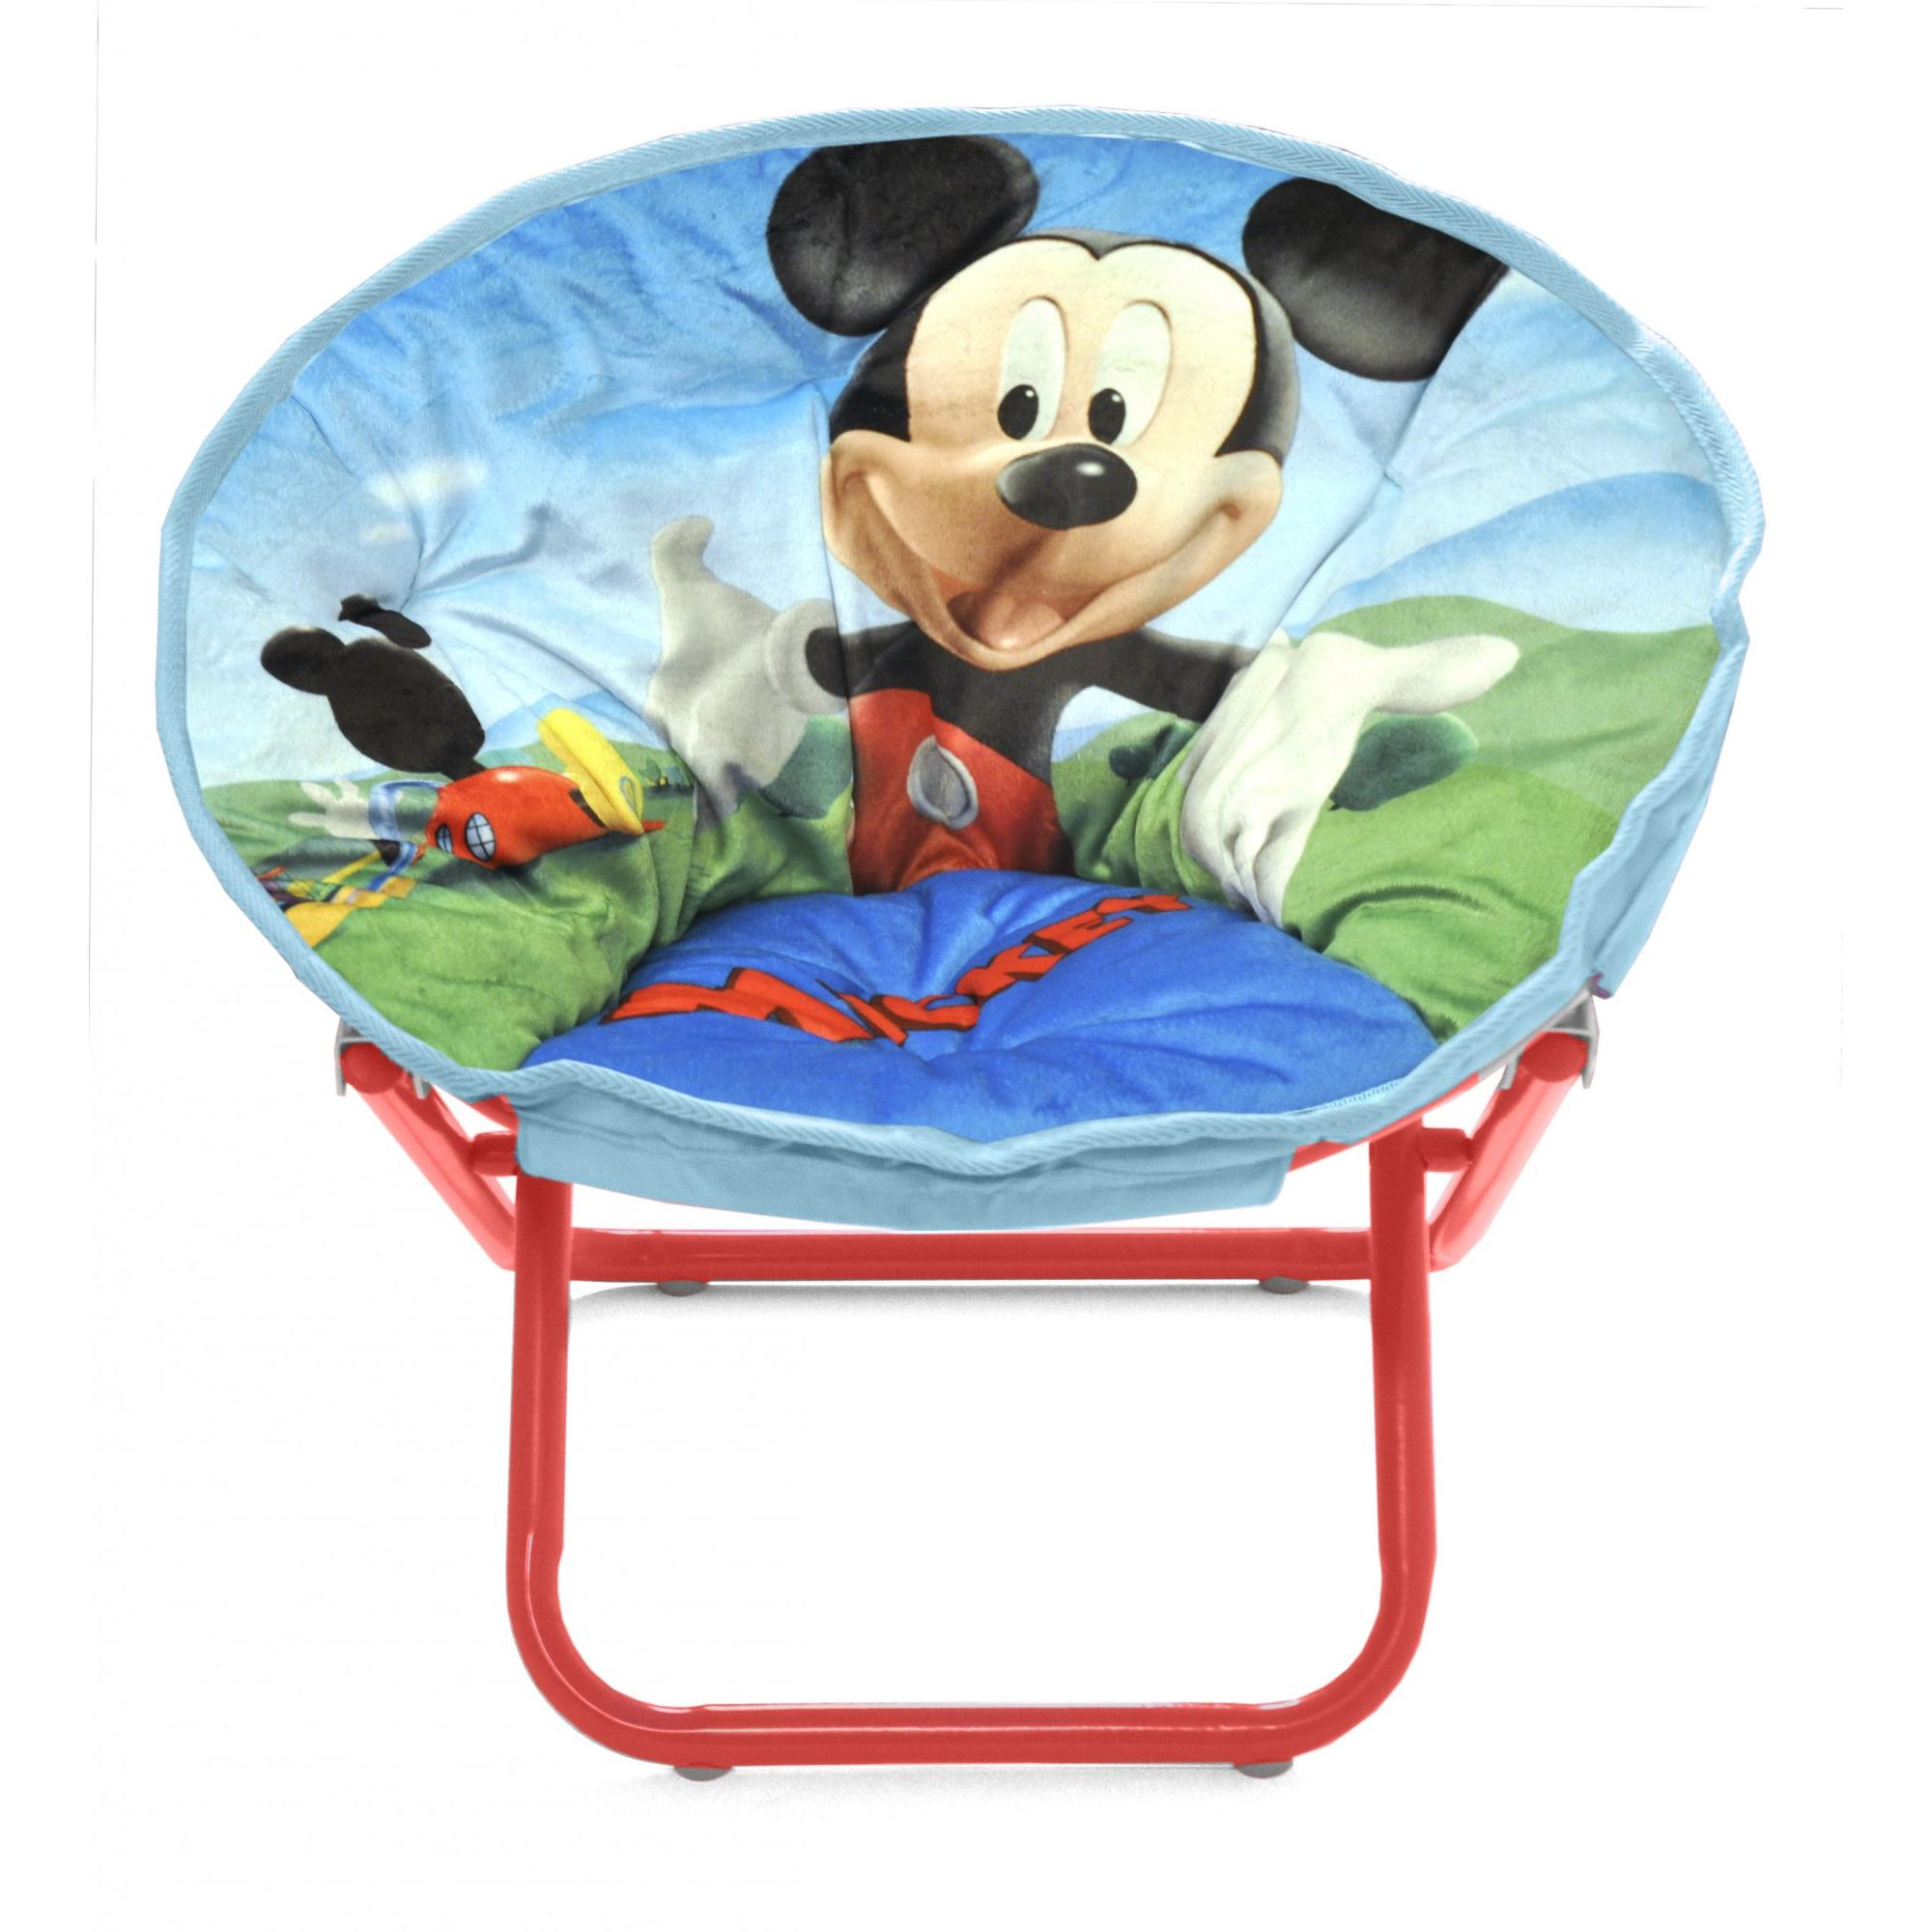 Disney Mickey Mouse Mini Collapsible Mini Saucer Chair